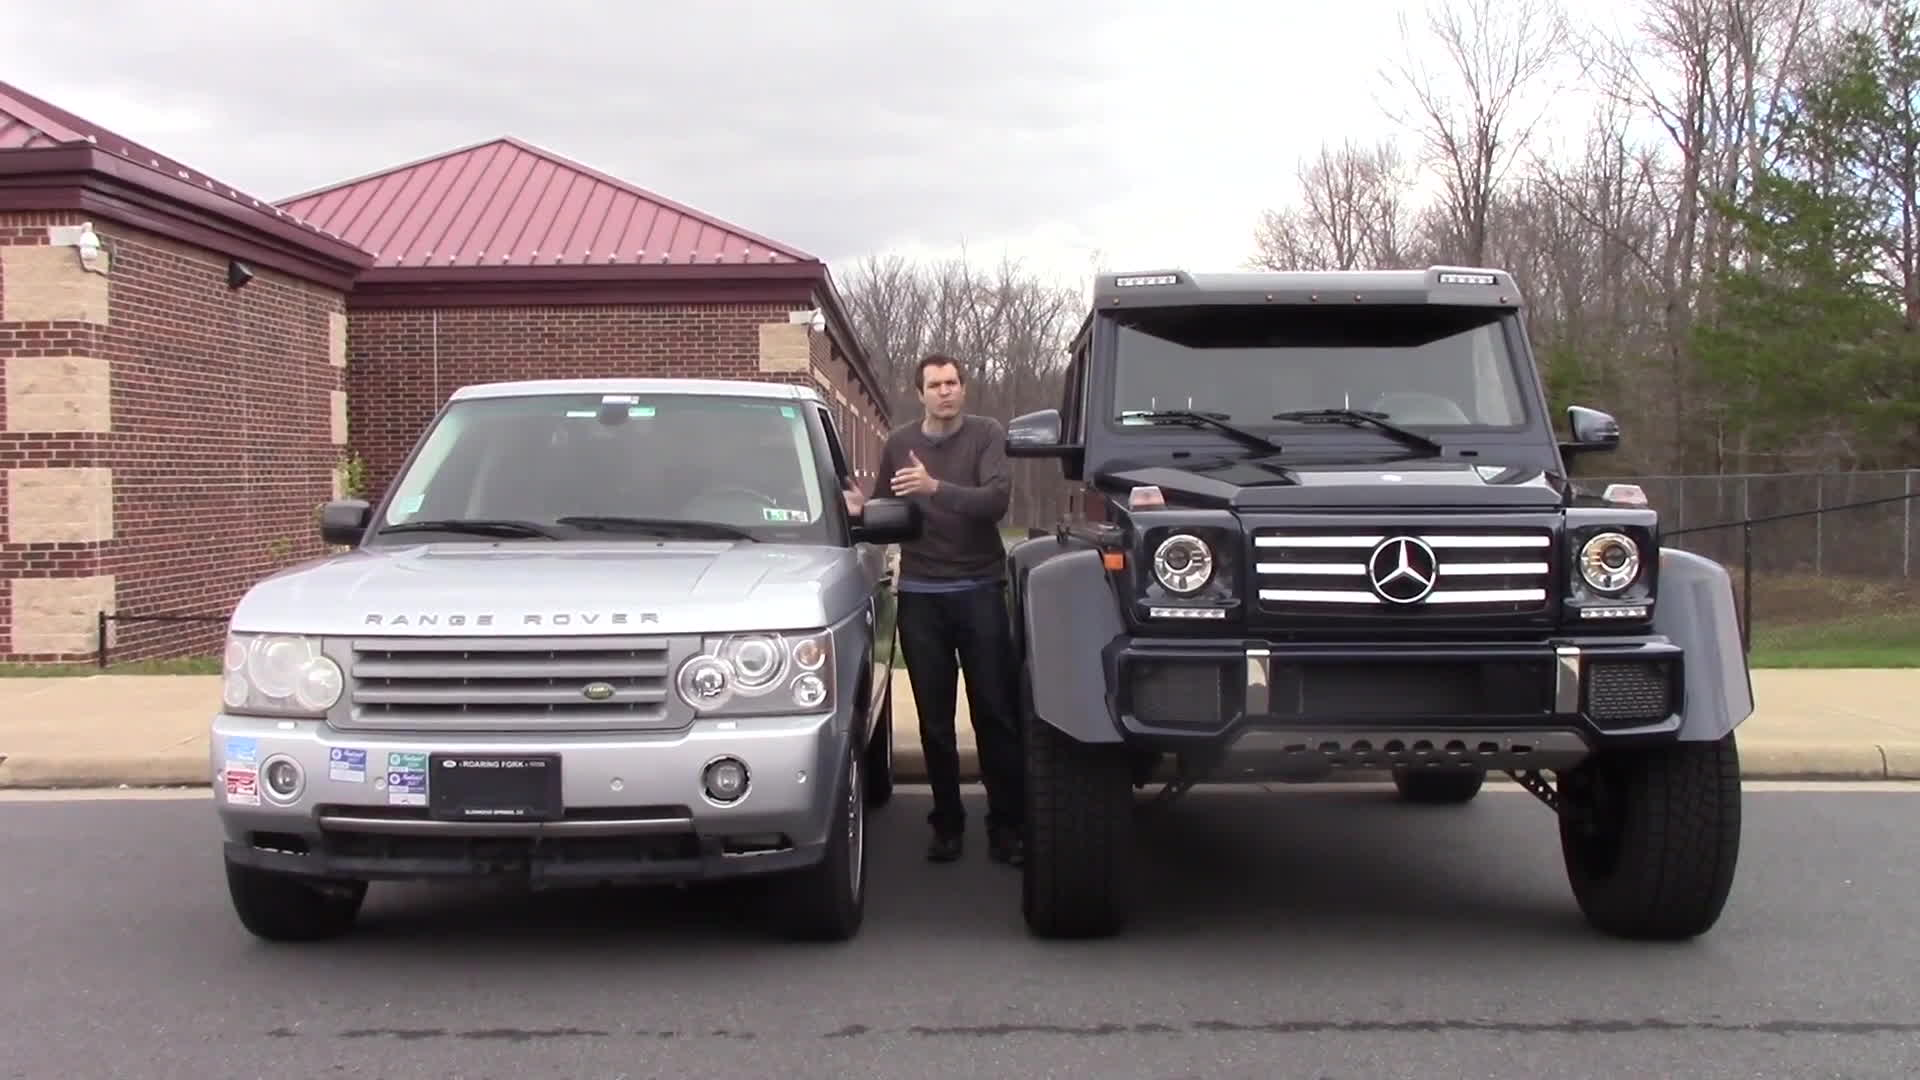 4x4 squared, g-wagen 4x4 squared, mercedes g-wagen, The Mercedes G550 4x4 Squared Is a $250,000 German Monster Truck GIFs